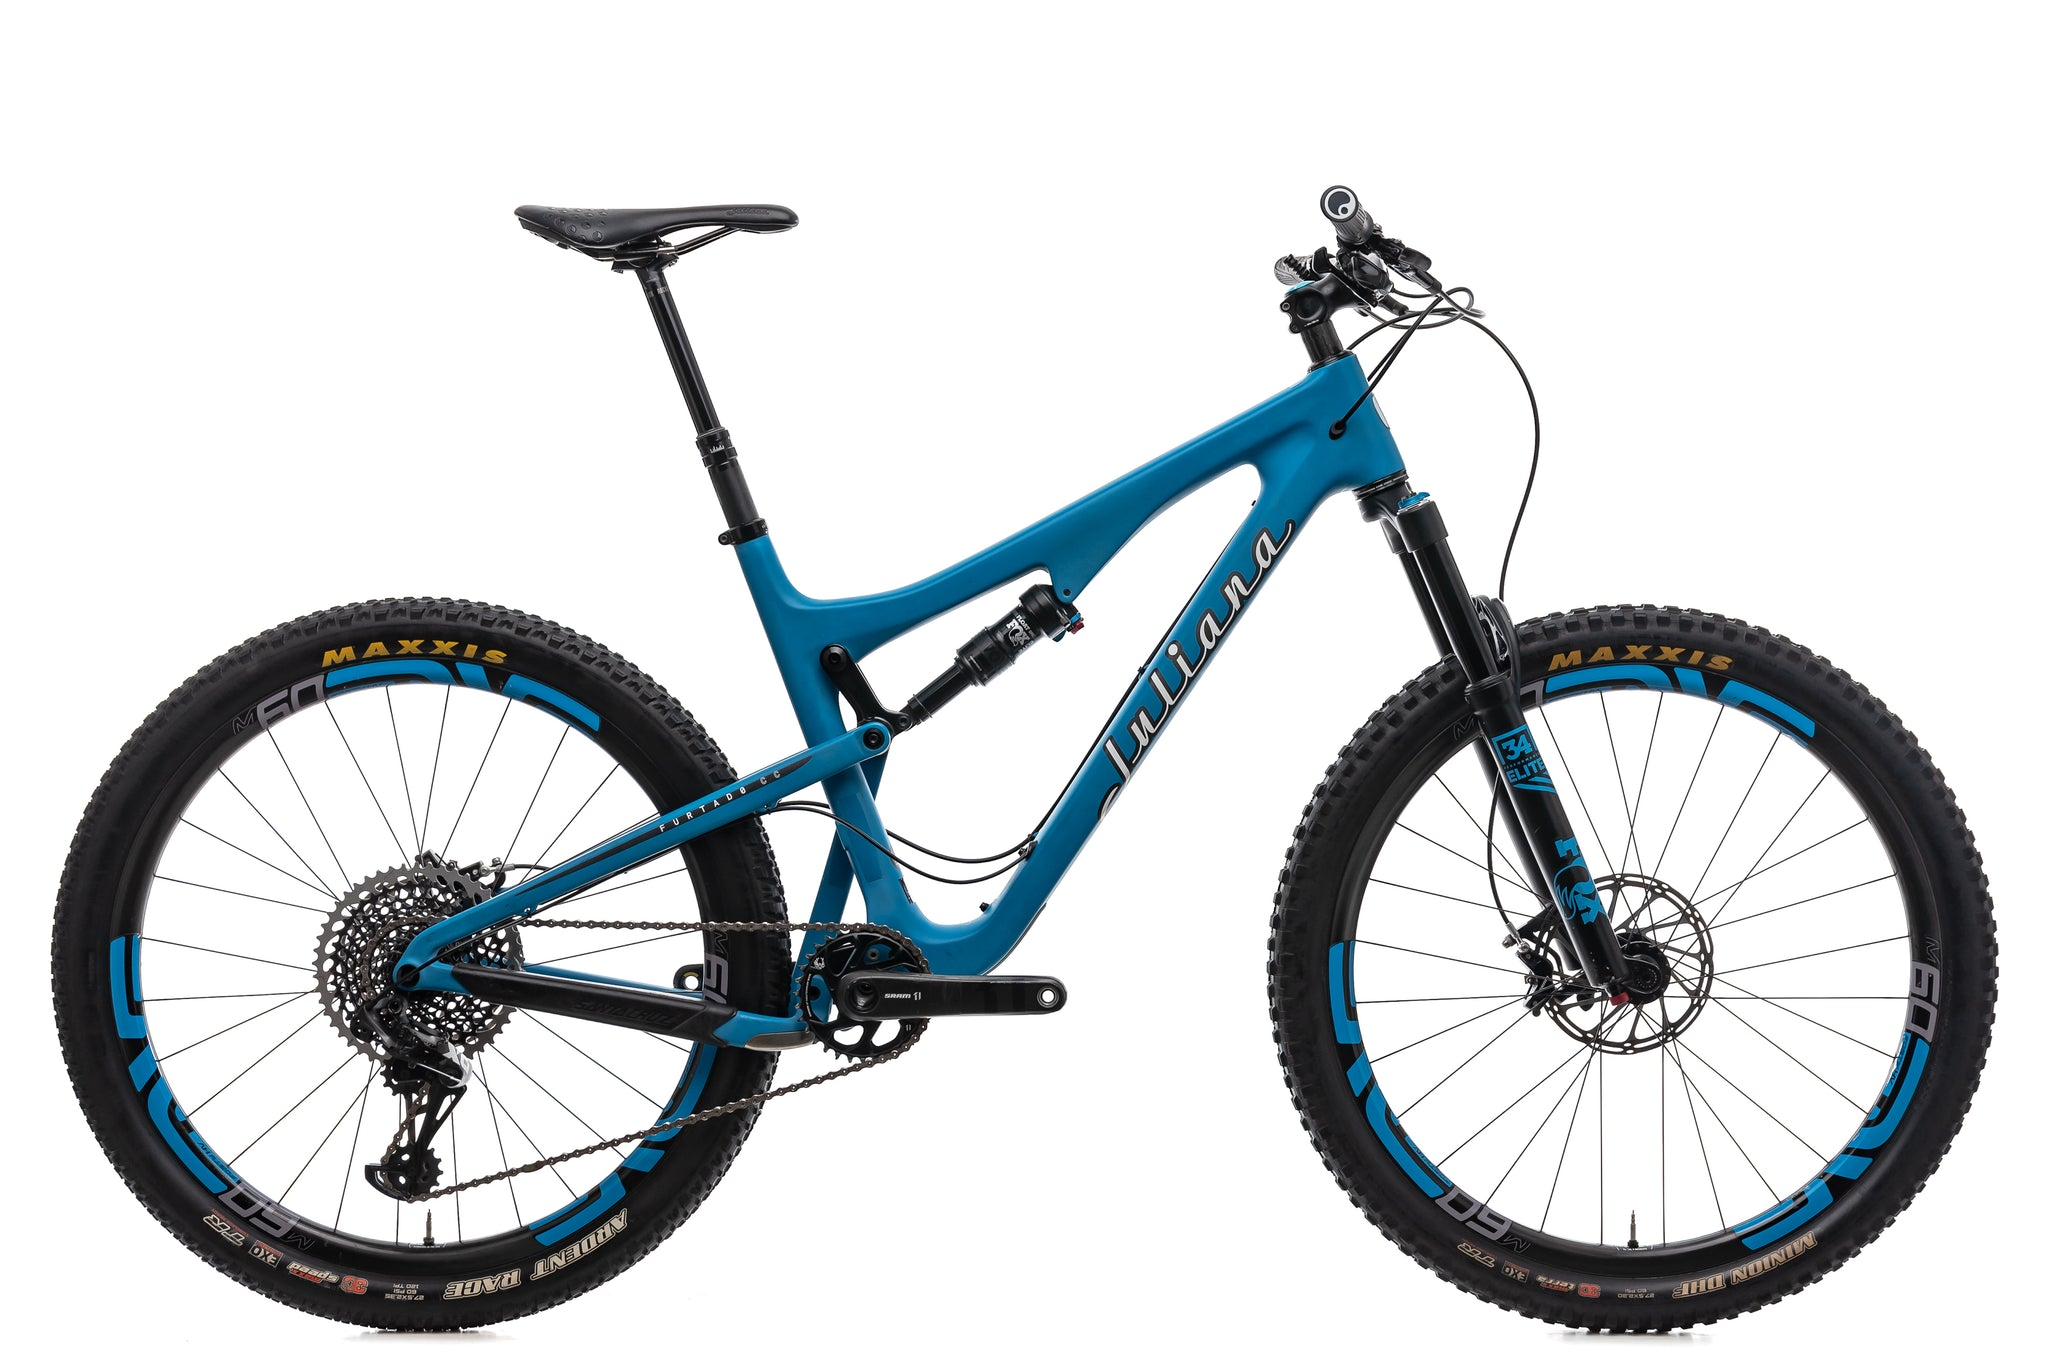 Used Juliana Furtado Santa Cruz Mountain Bike